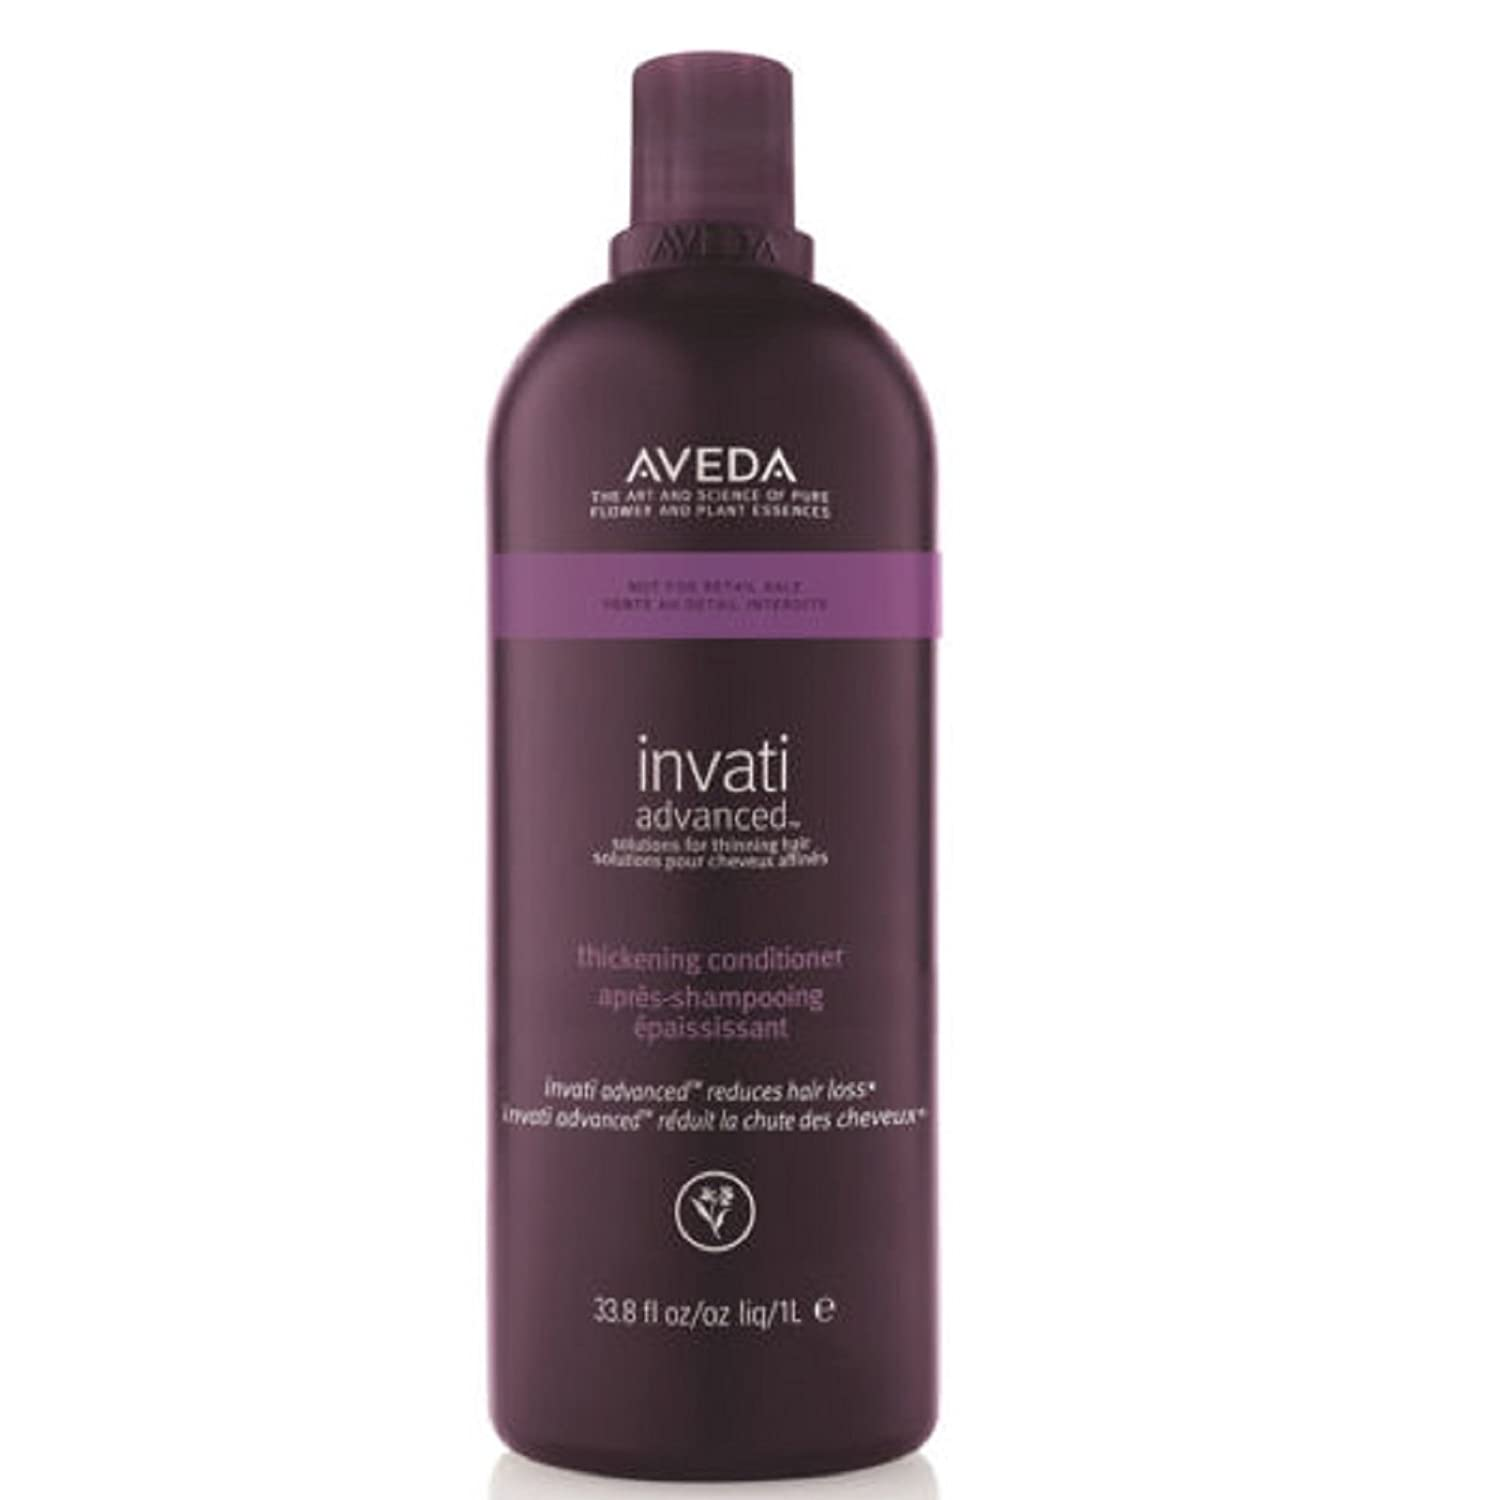 Aveda Invati Advanced Thickening Conditioner (33.8 Ounce)